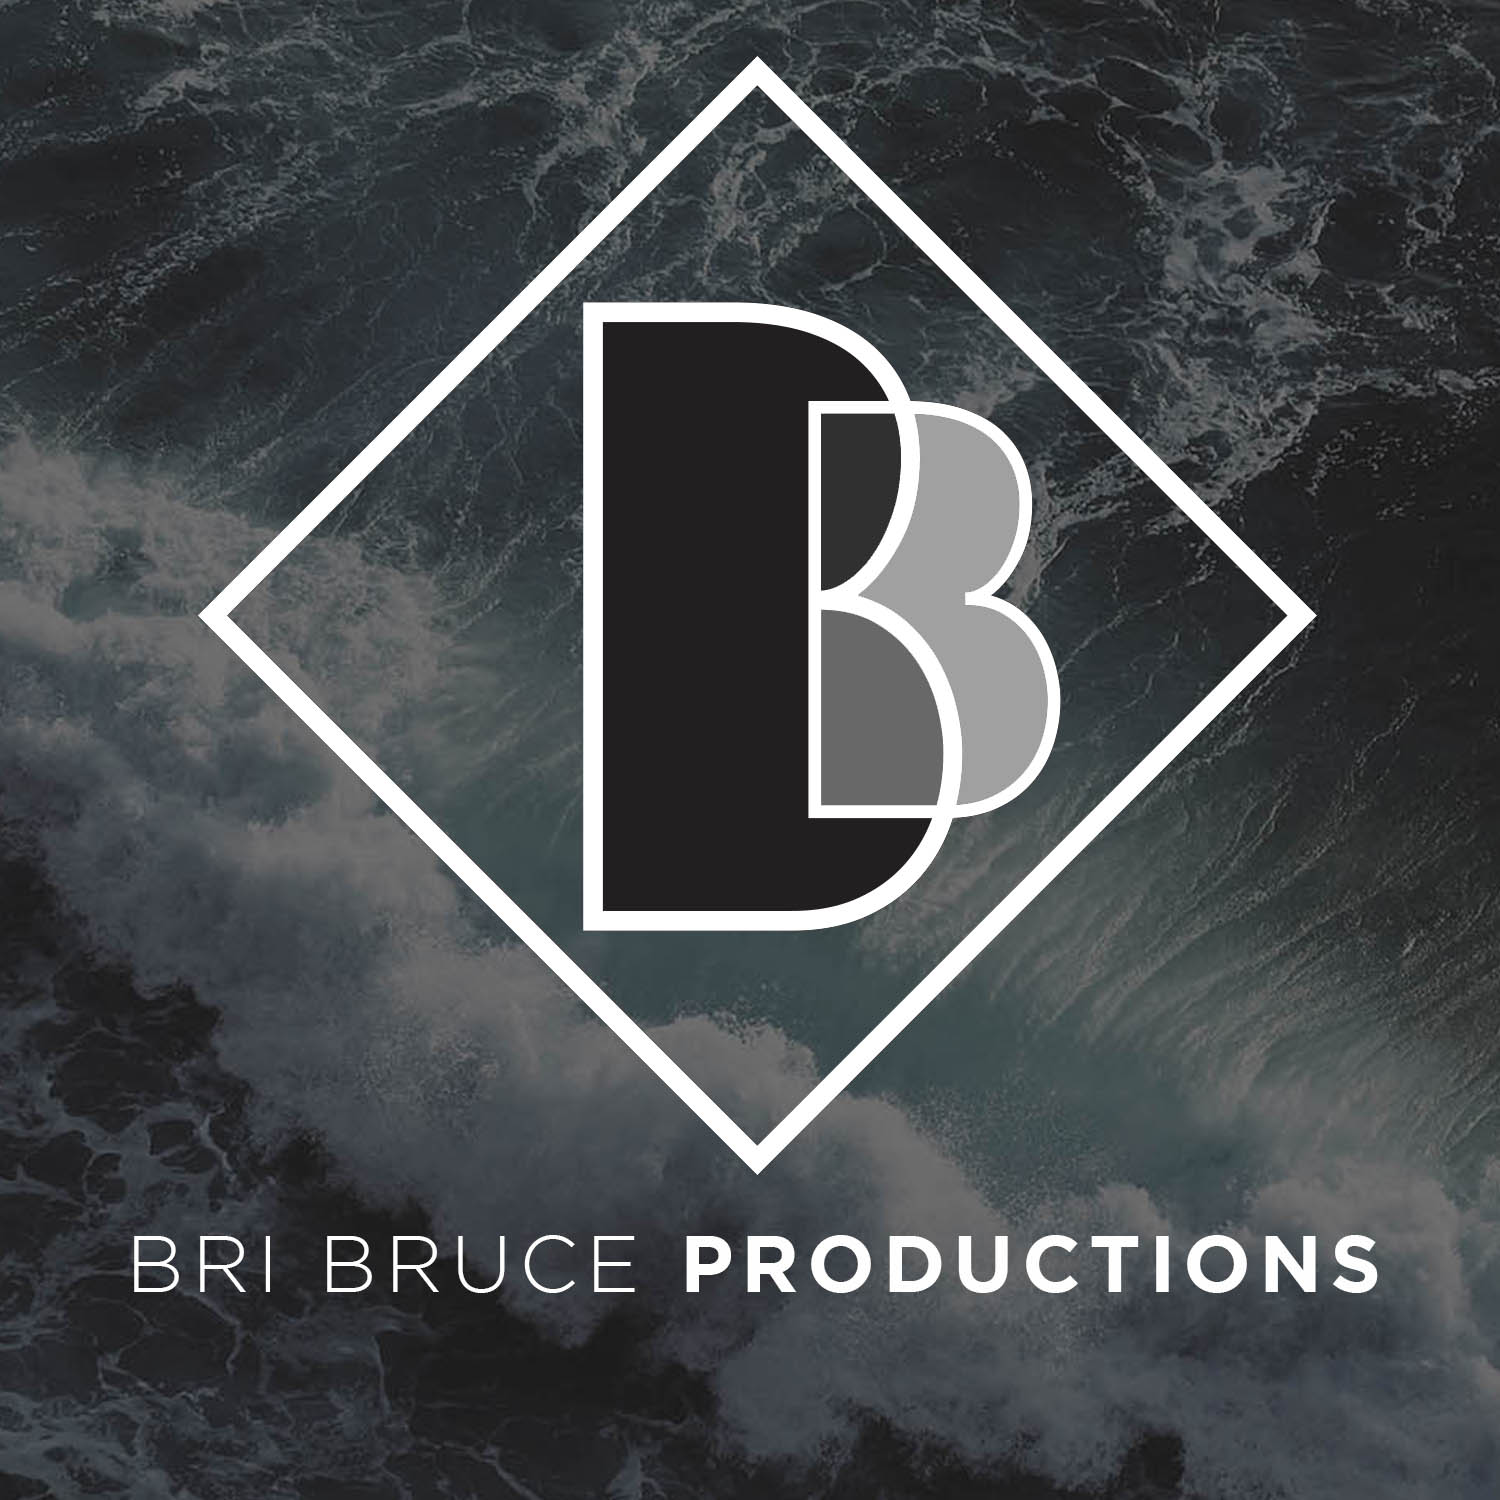 BBP_newlogo_with title and back.jpg